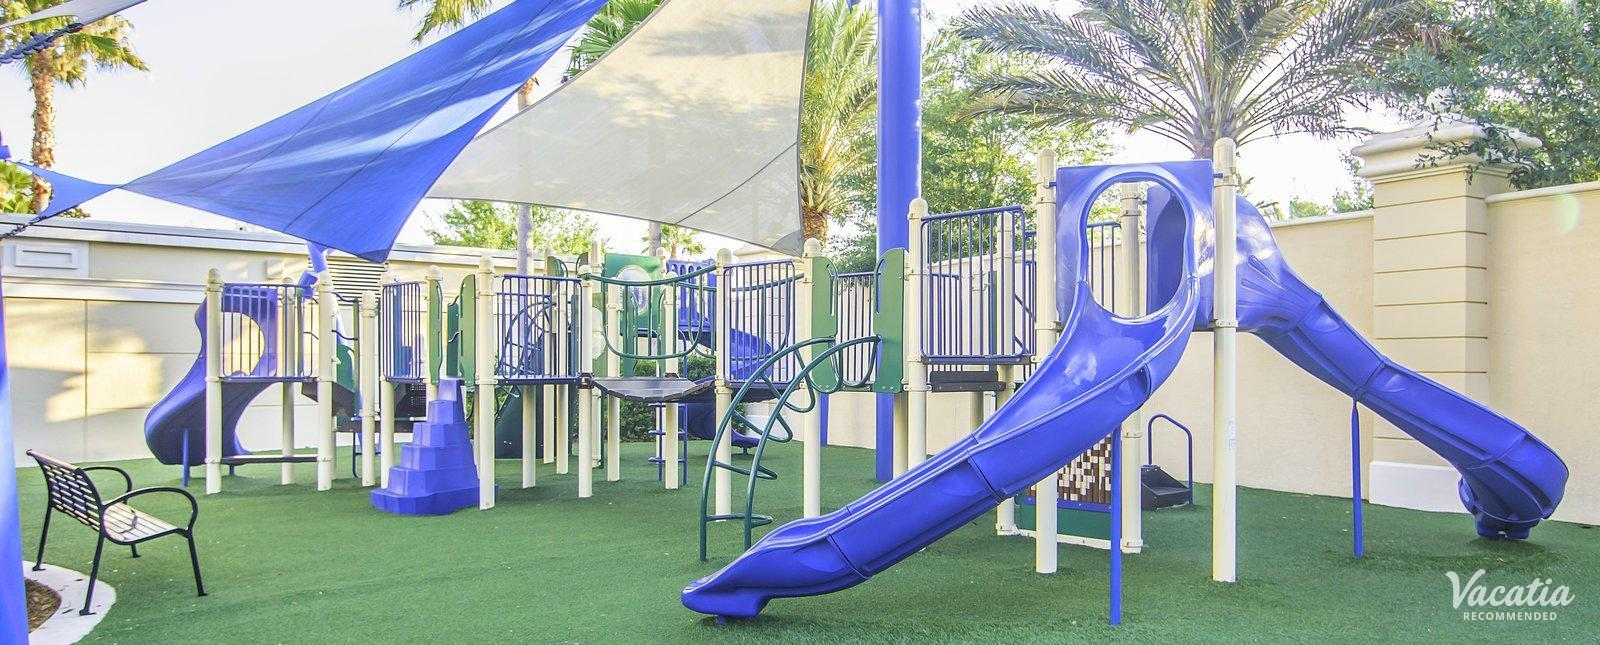 Hilton Grand Vacations Club, Parc Soleil Suites playground area for kids